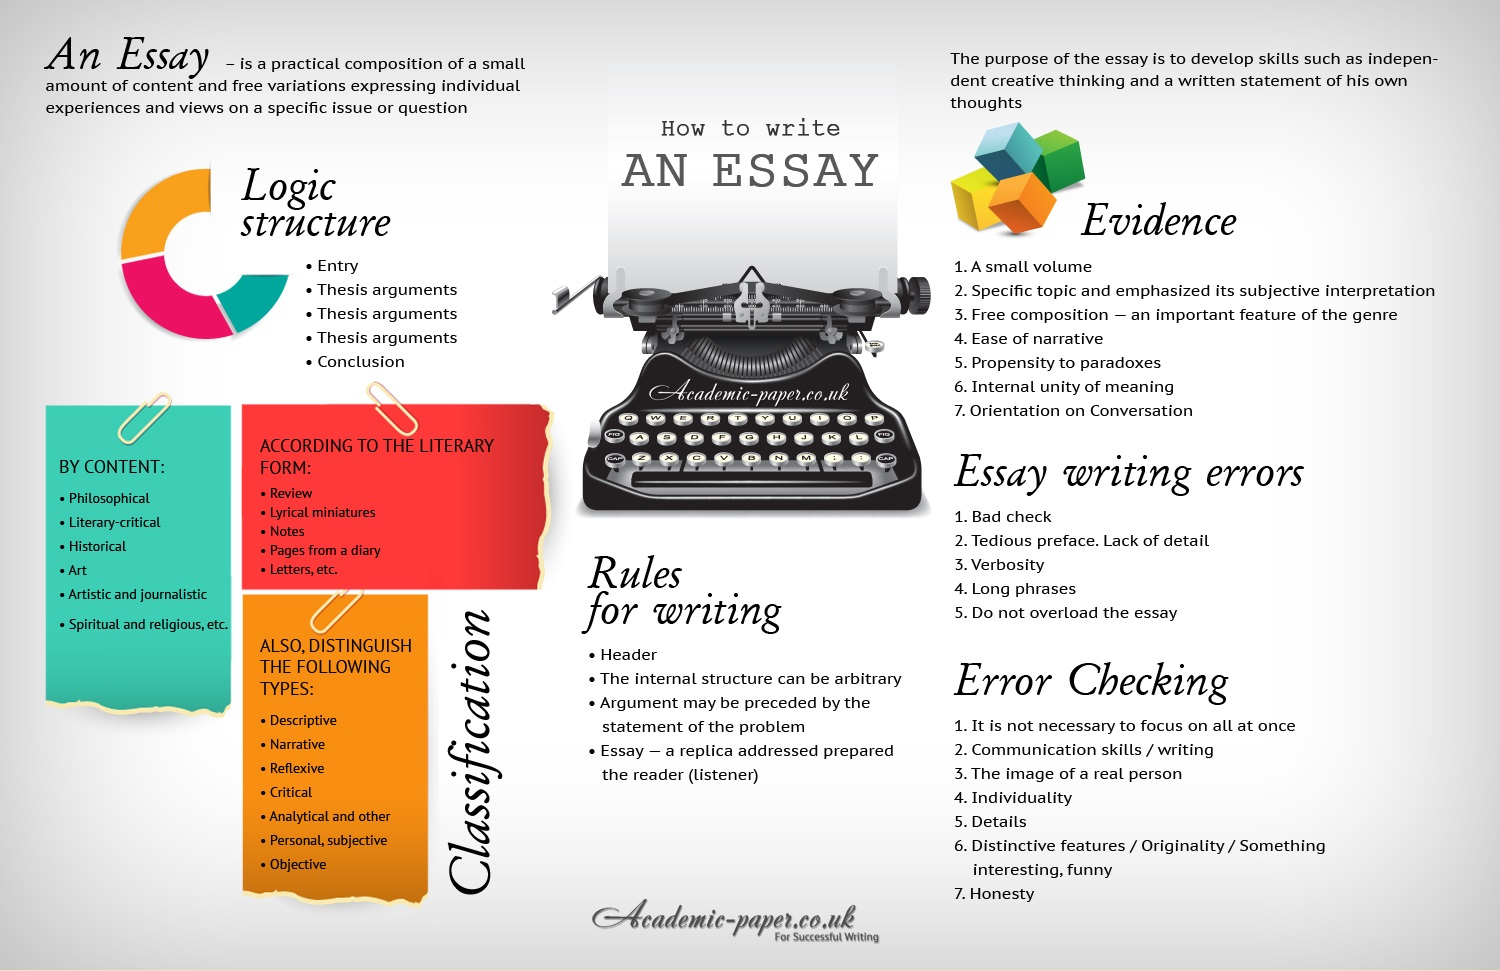 006 Essay Example Steps To Writing Stunning An Middle School Argumentative Full